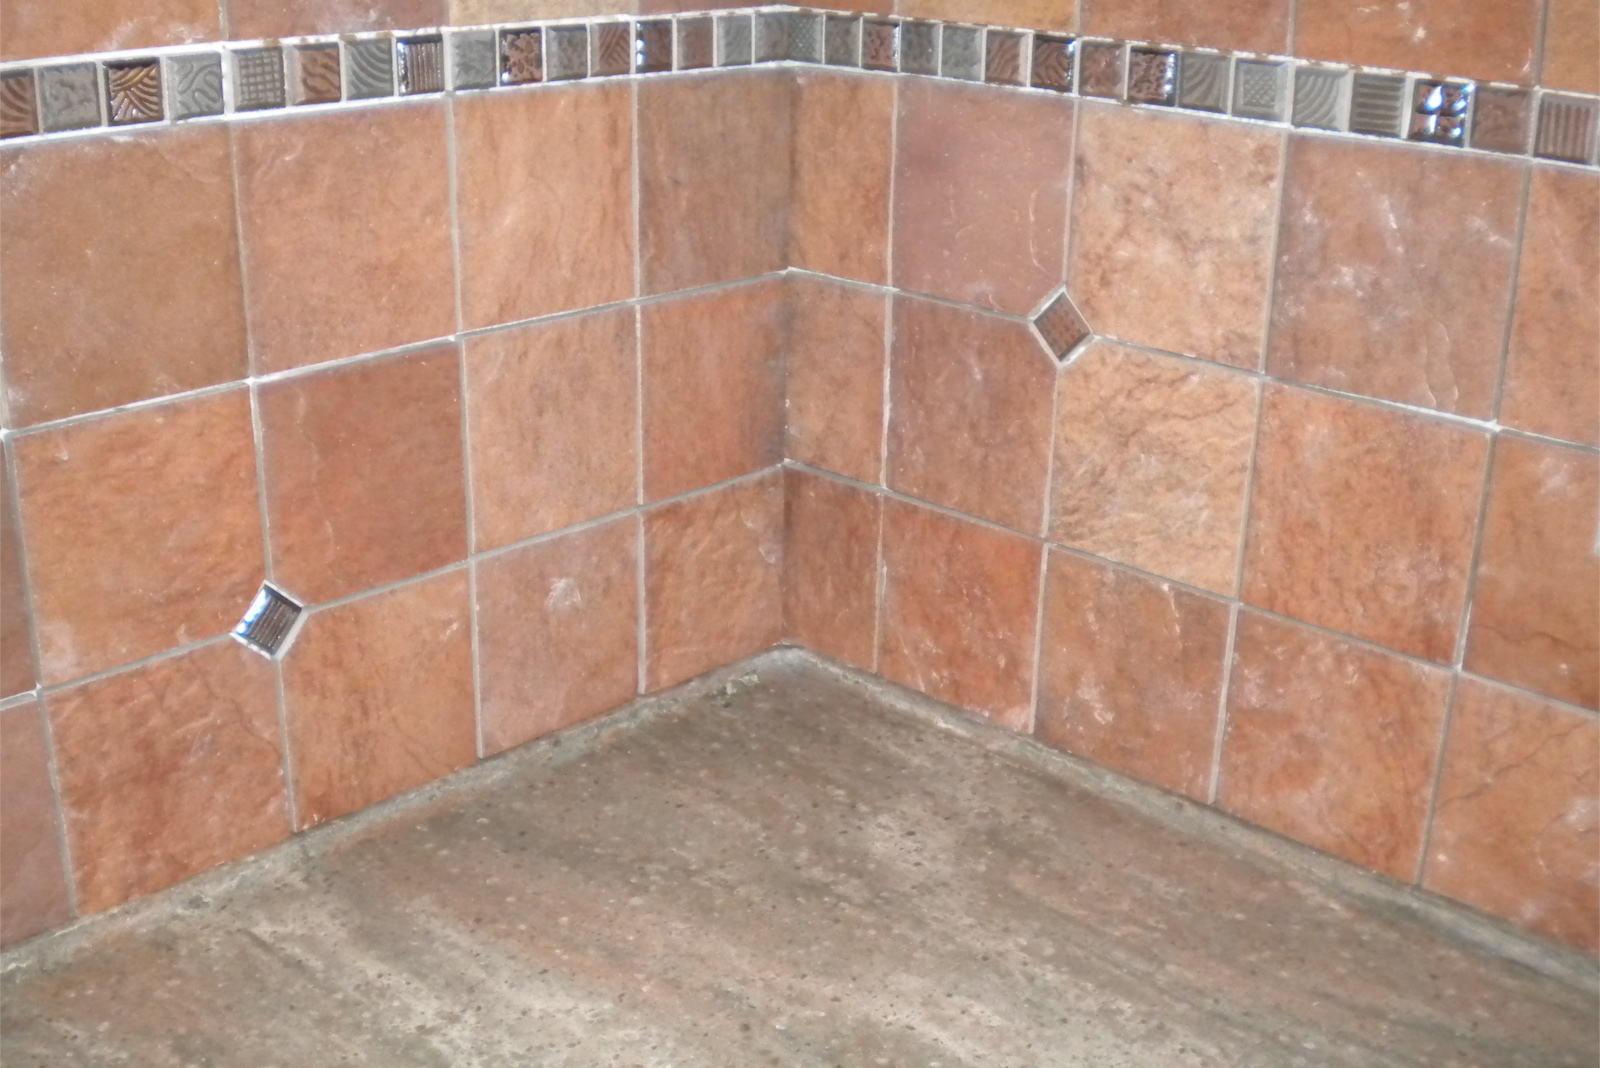 Tiling and stone flooring work by Handyman Hotline guys